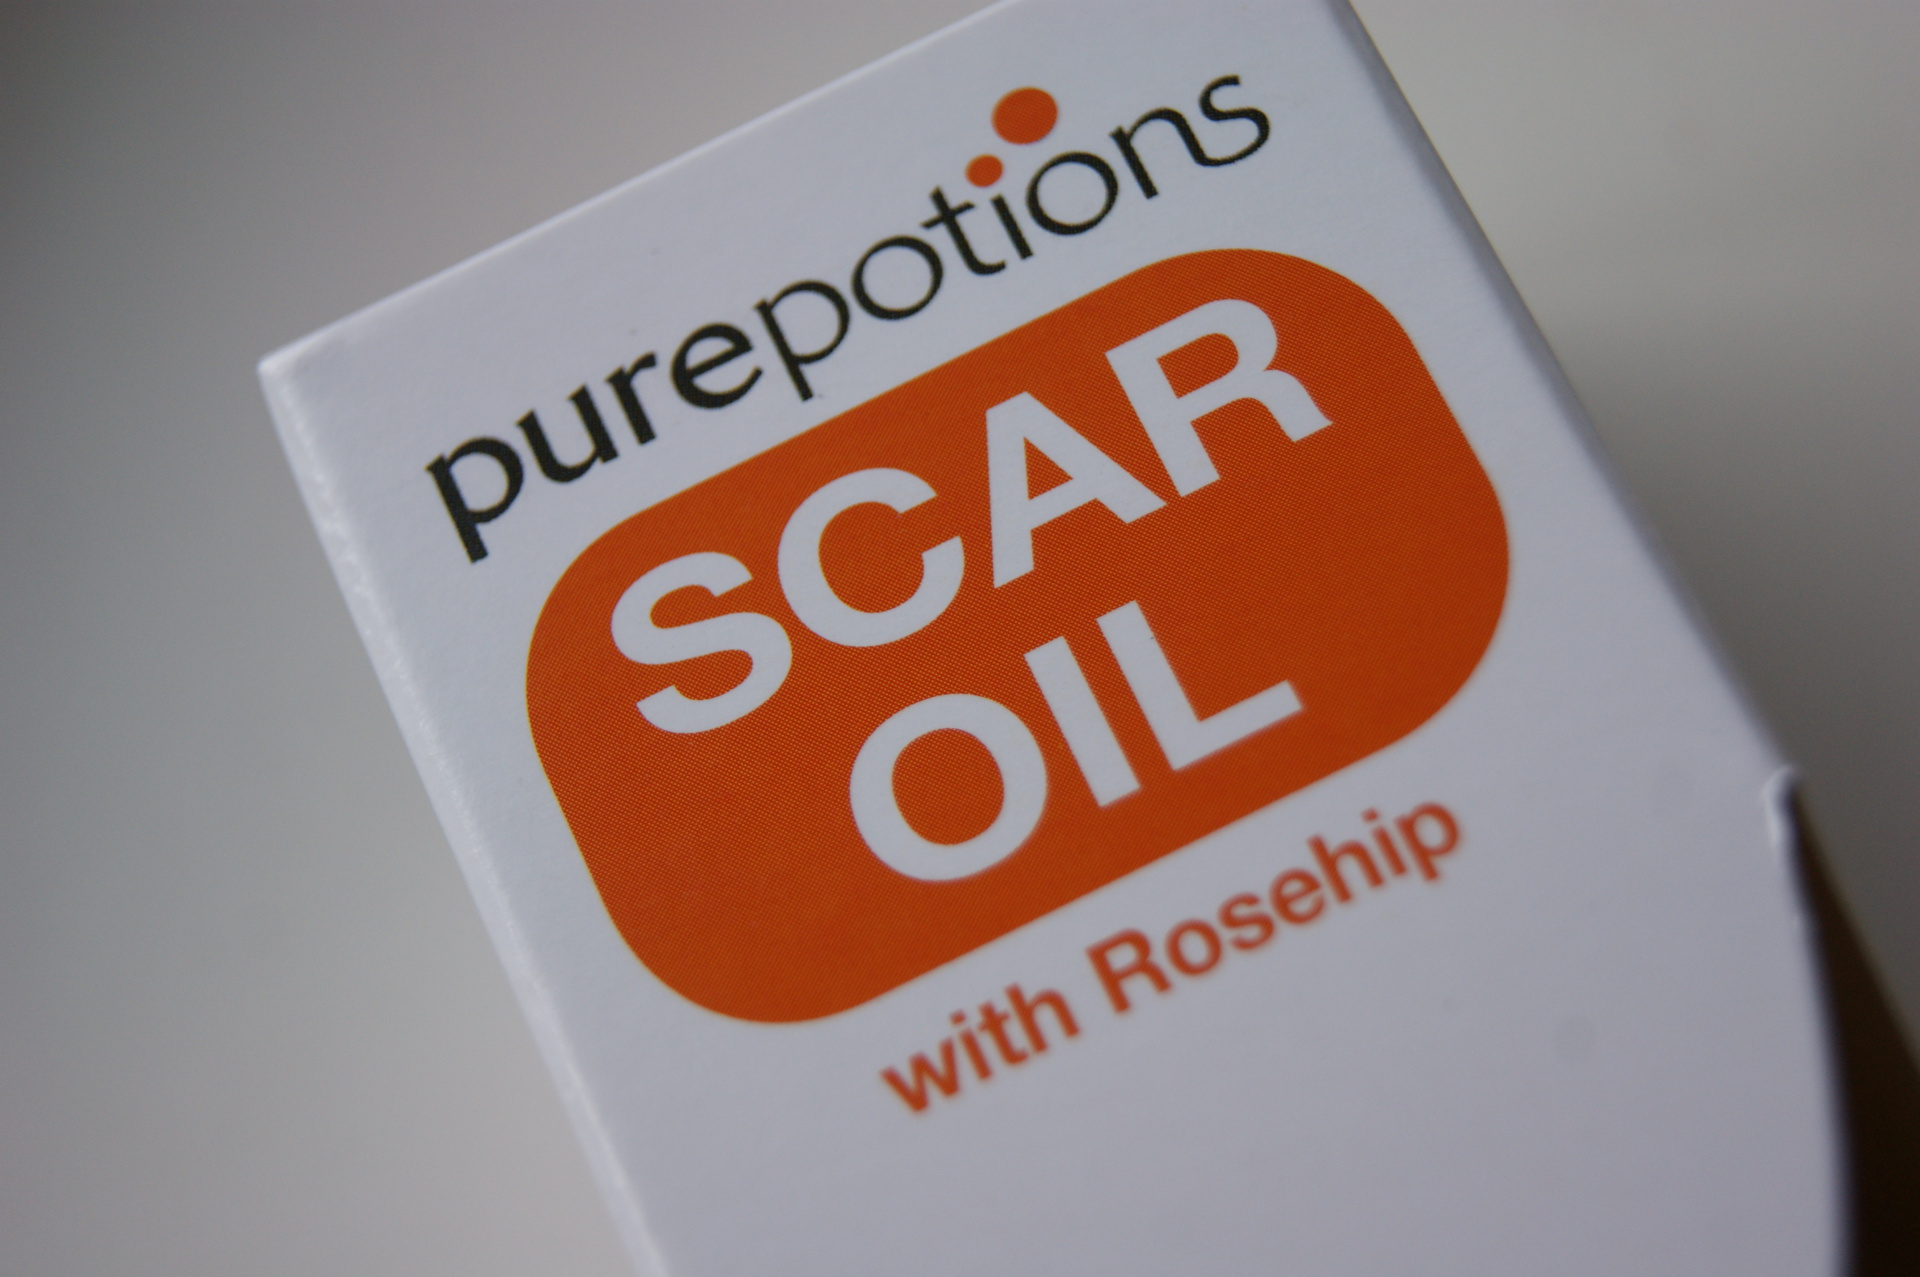 Pure Potions - Scar Oil